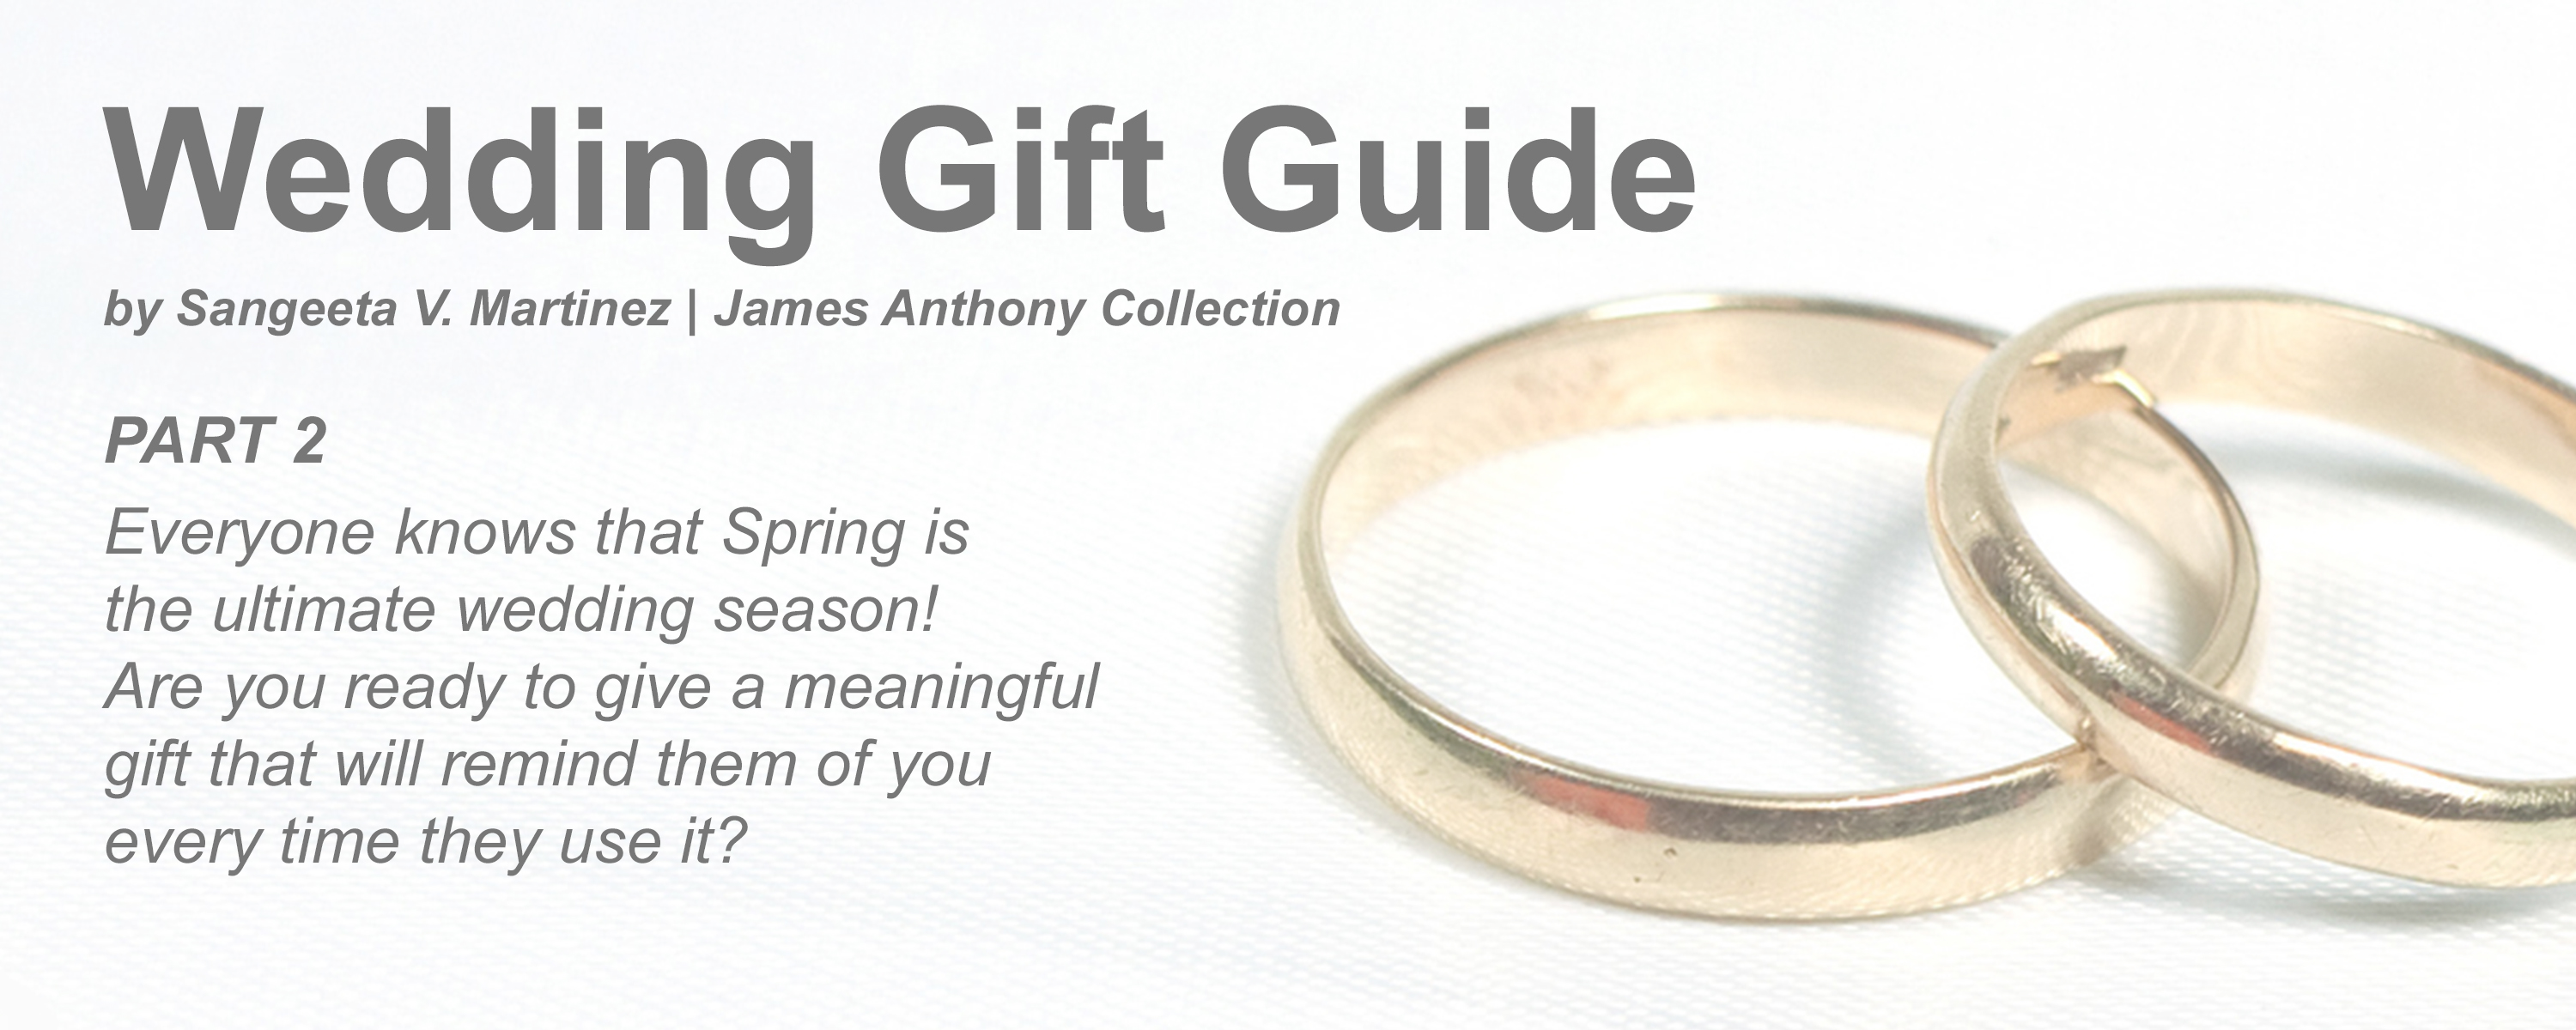 Wedding Gift Guide Part 2 James Anthony Collection